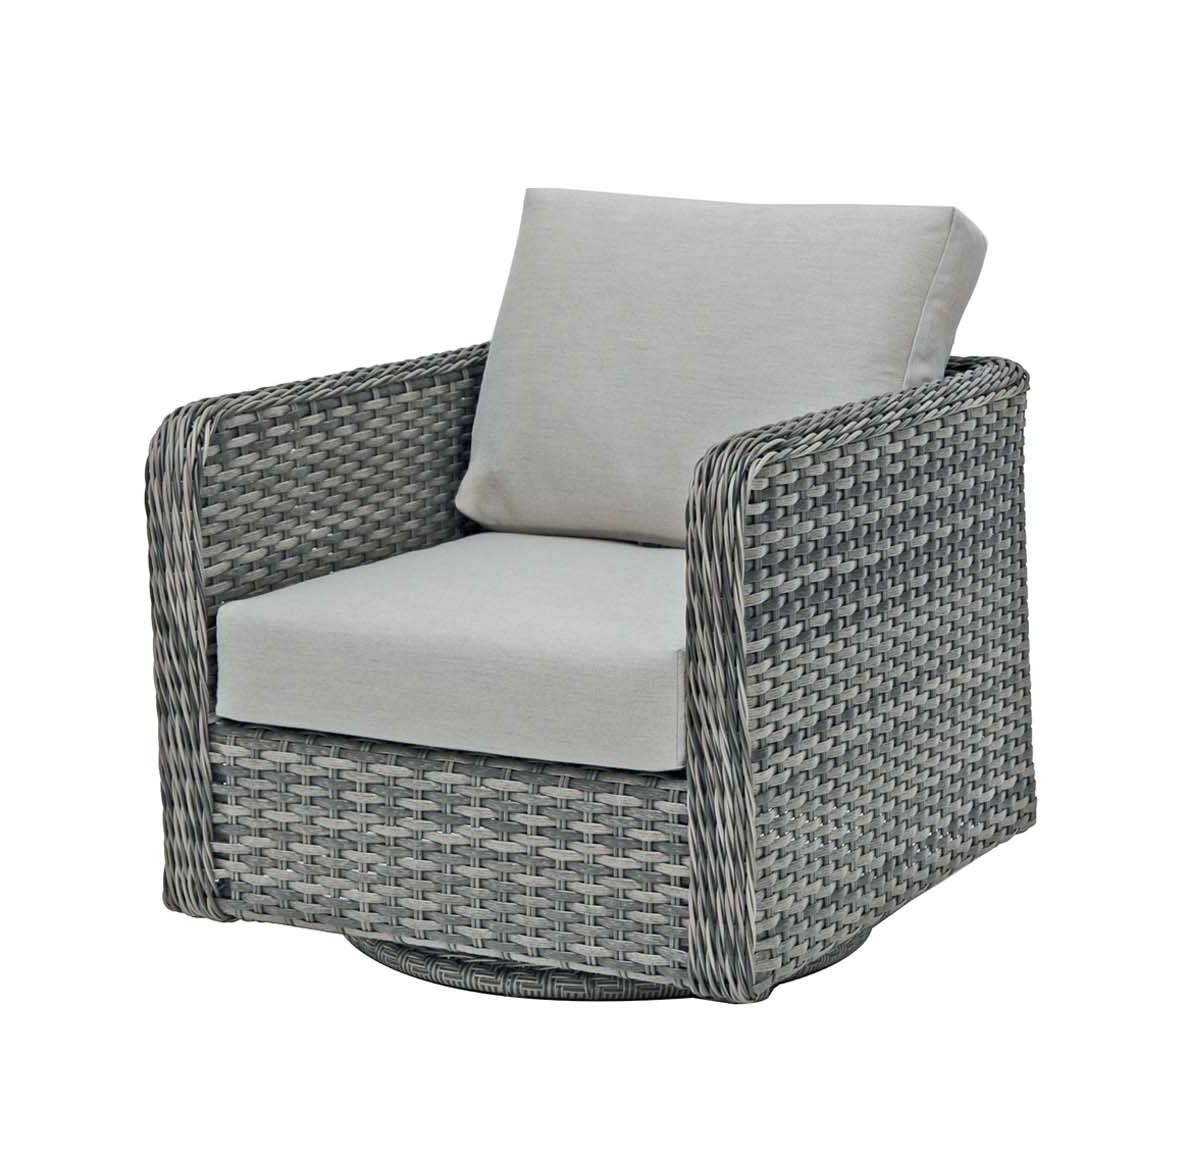 Multi color grey wicker with a light grey cushion, the Isola Island swivel gliding club chair.